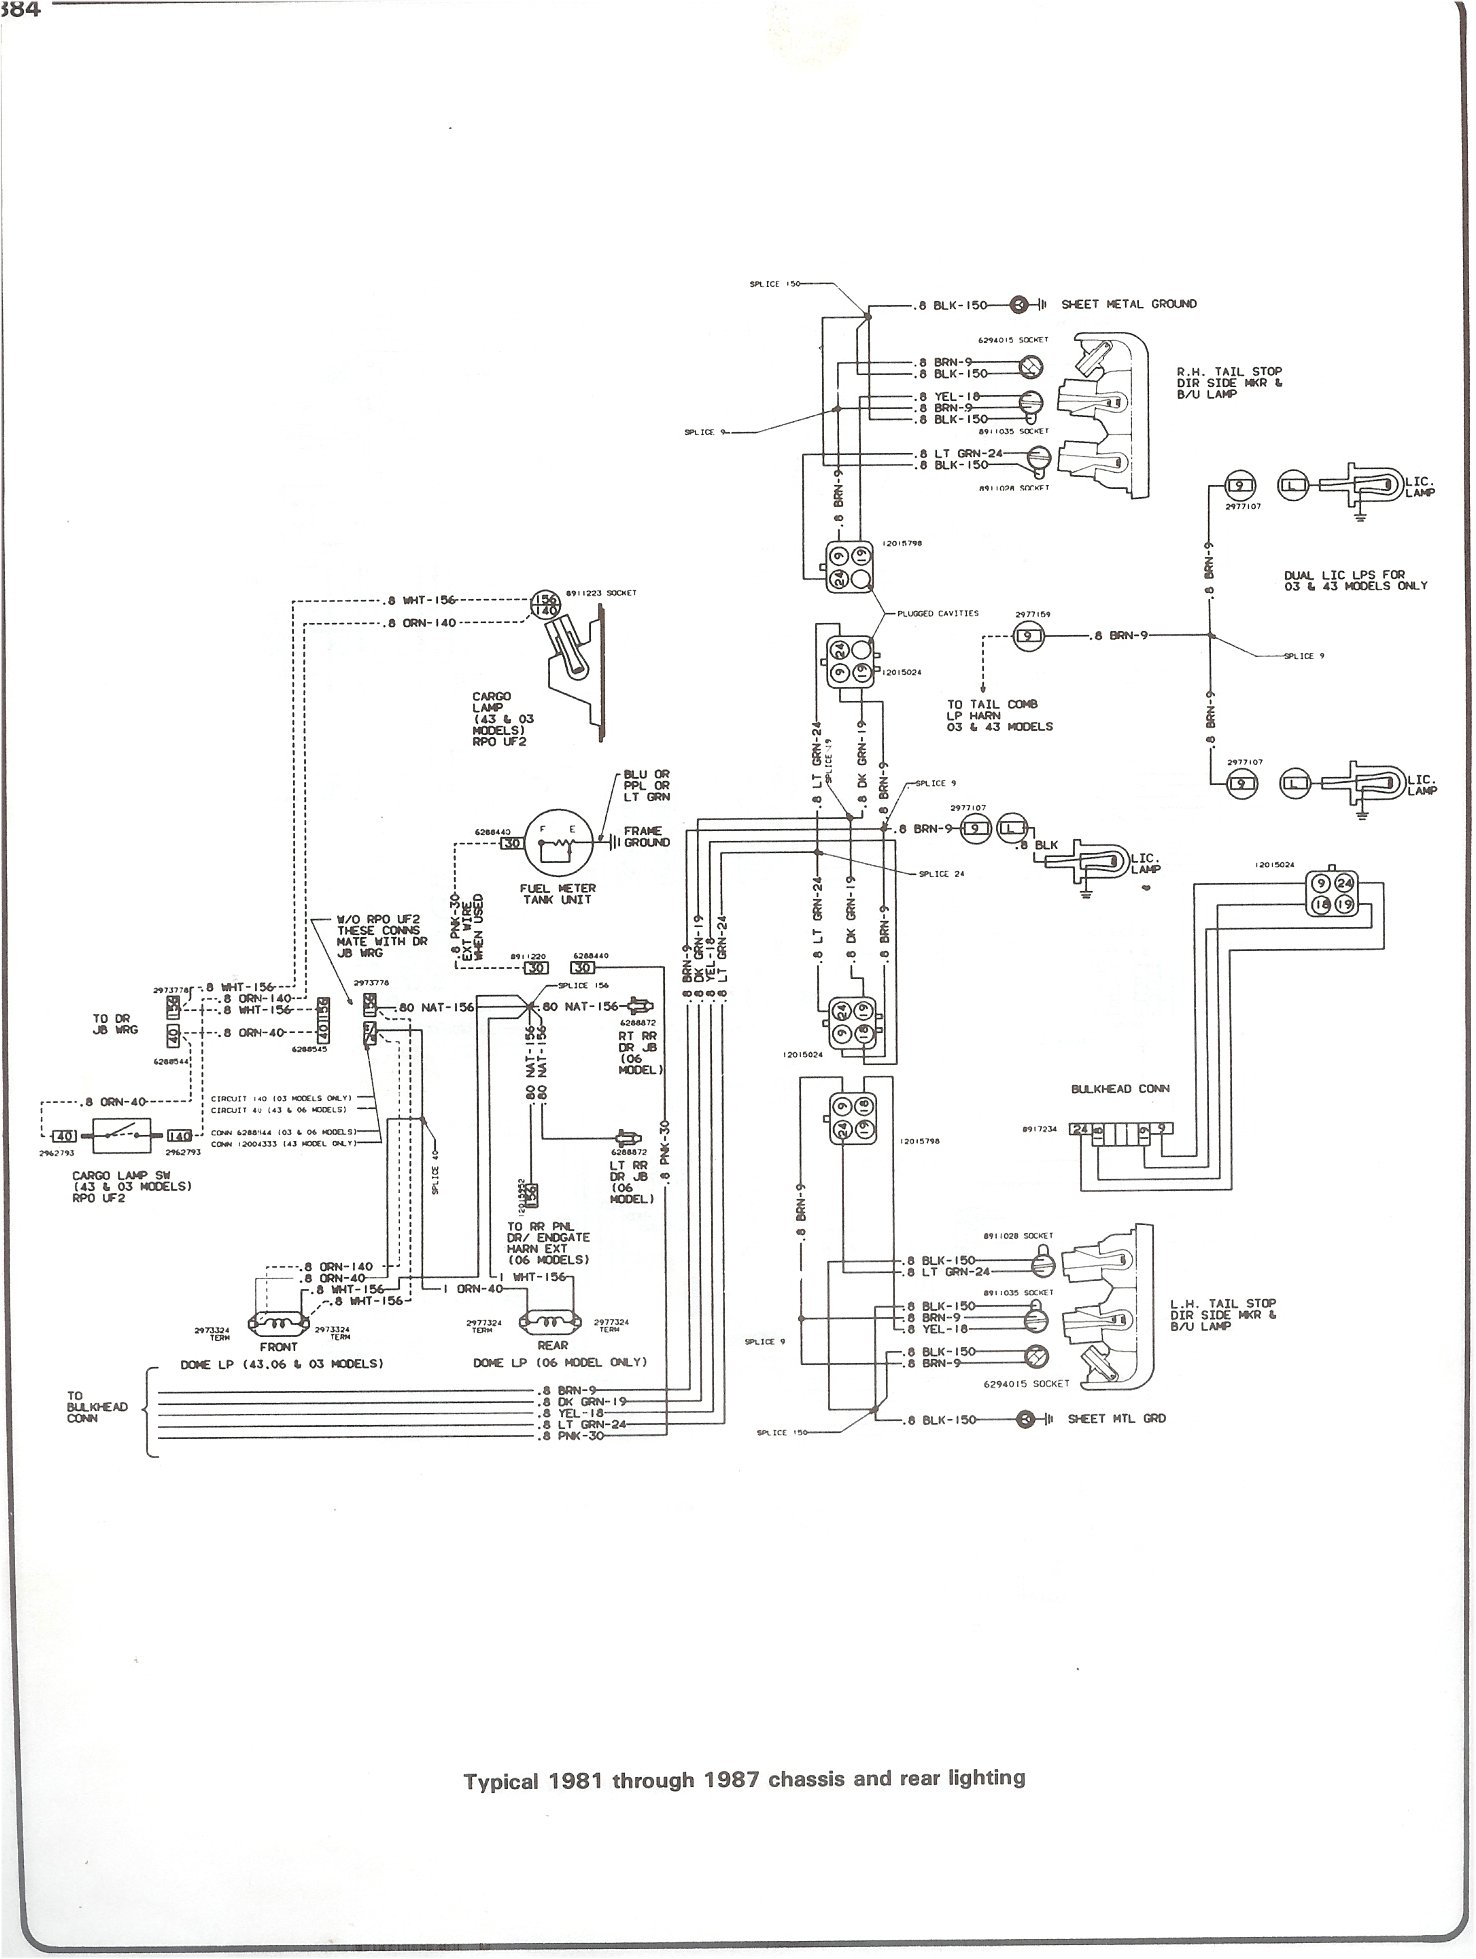 81 87_chass_rr_light complete 73 87 wiring diagrams 1981 K20 Step Side at panicattacktreatment.co